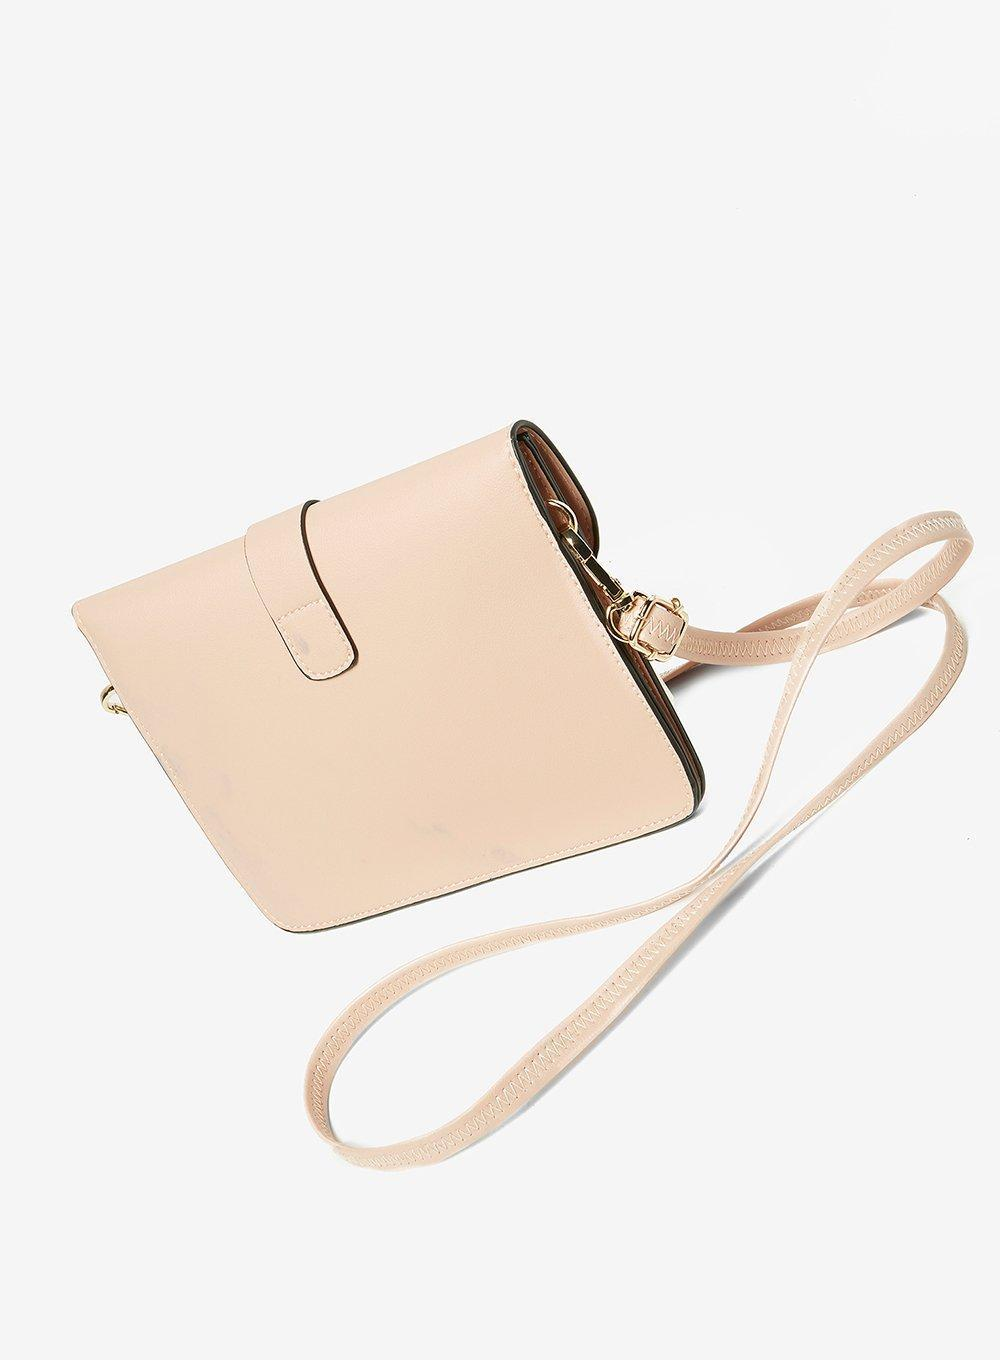 Dorothy Perkins Blush Pushlock Mini Cross Body Bag